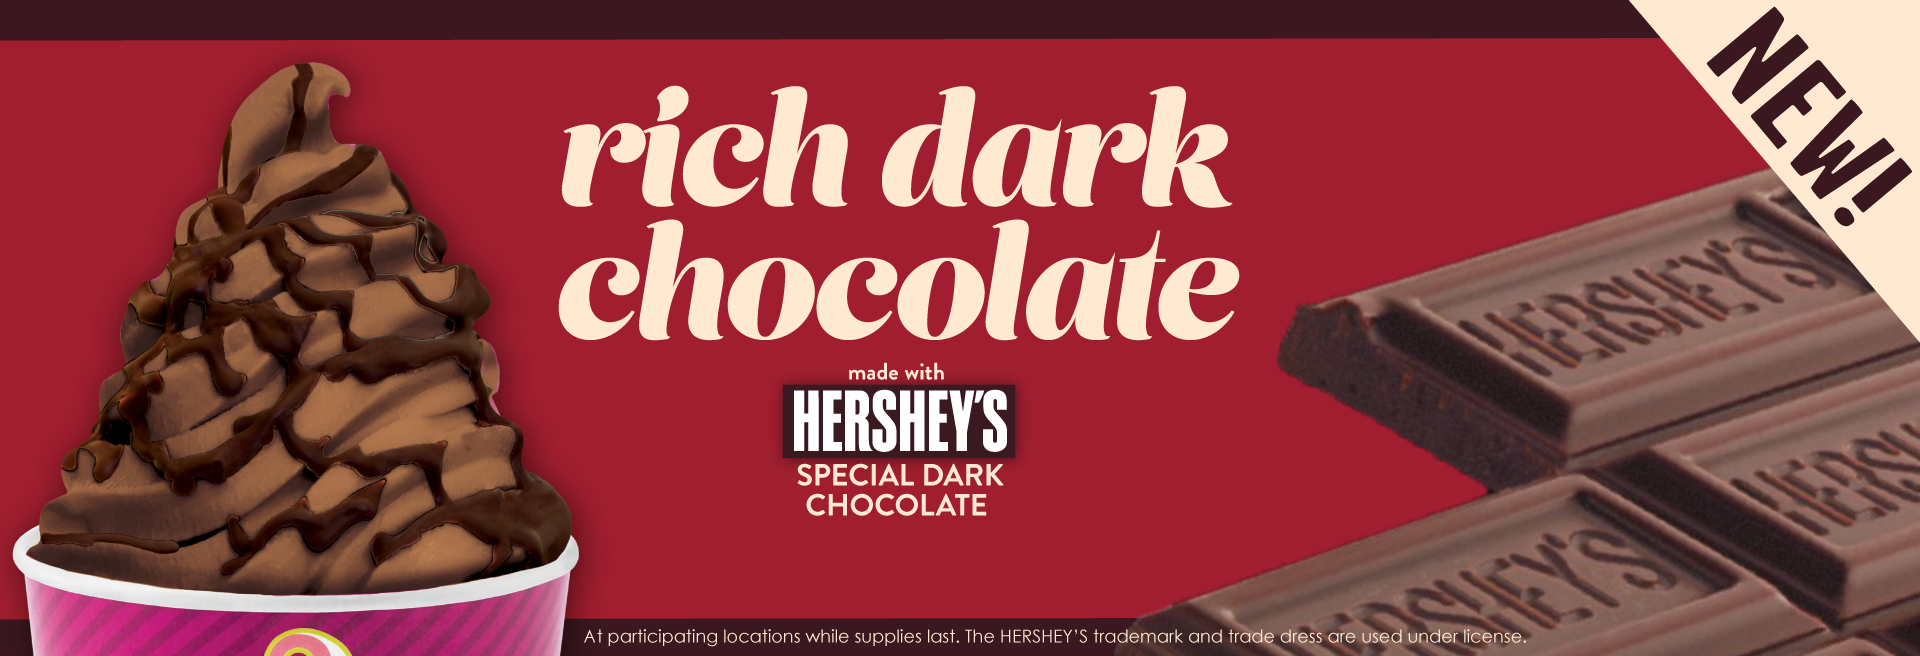 Life is better with chocolate. Menchie's Rich Dark Chocolate made with Hershey's Special Dark Chocolate is a decadent dark chocolate frozen yogurt flavor that will satisfy all your chocolate cravings.